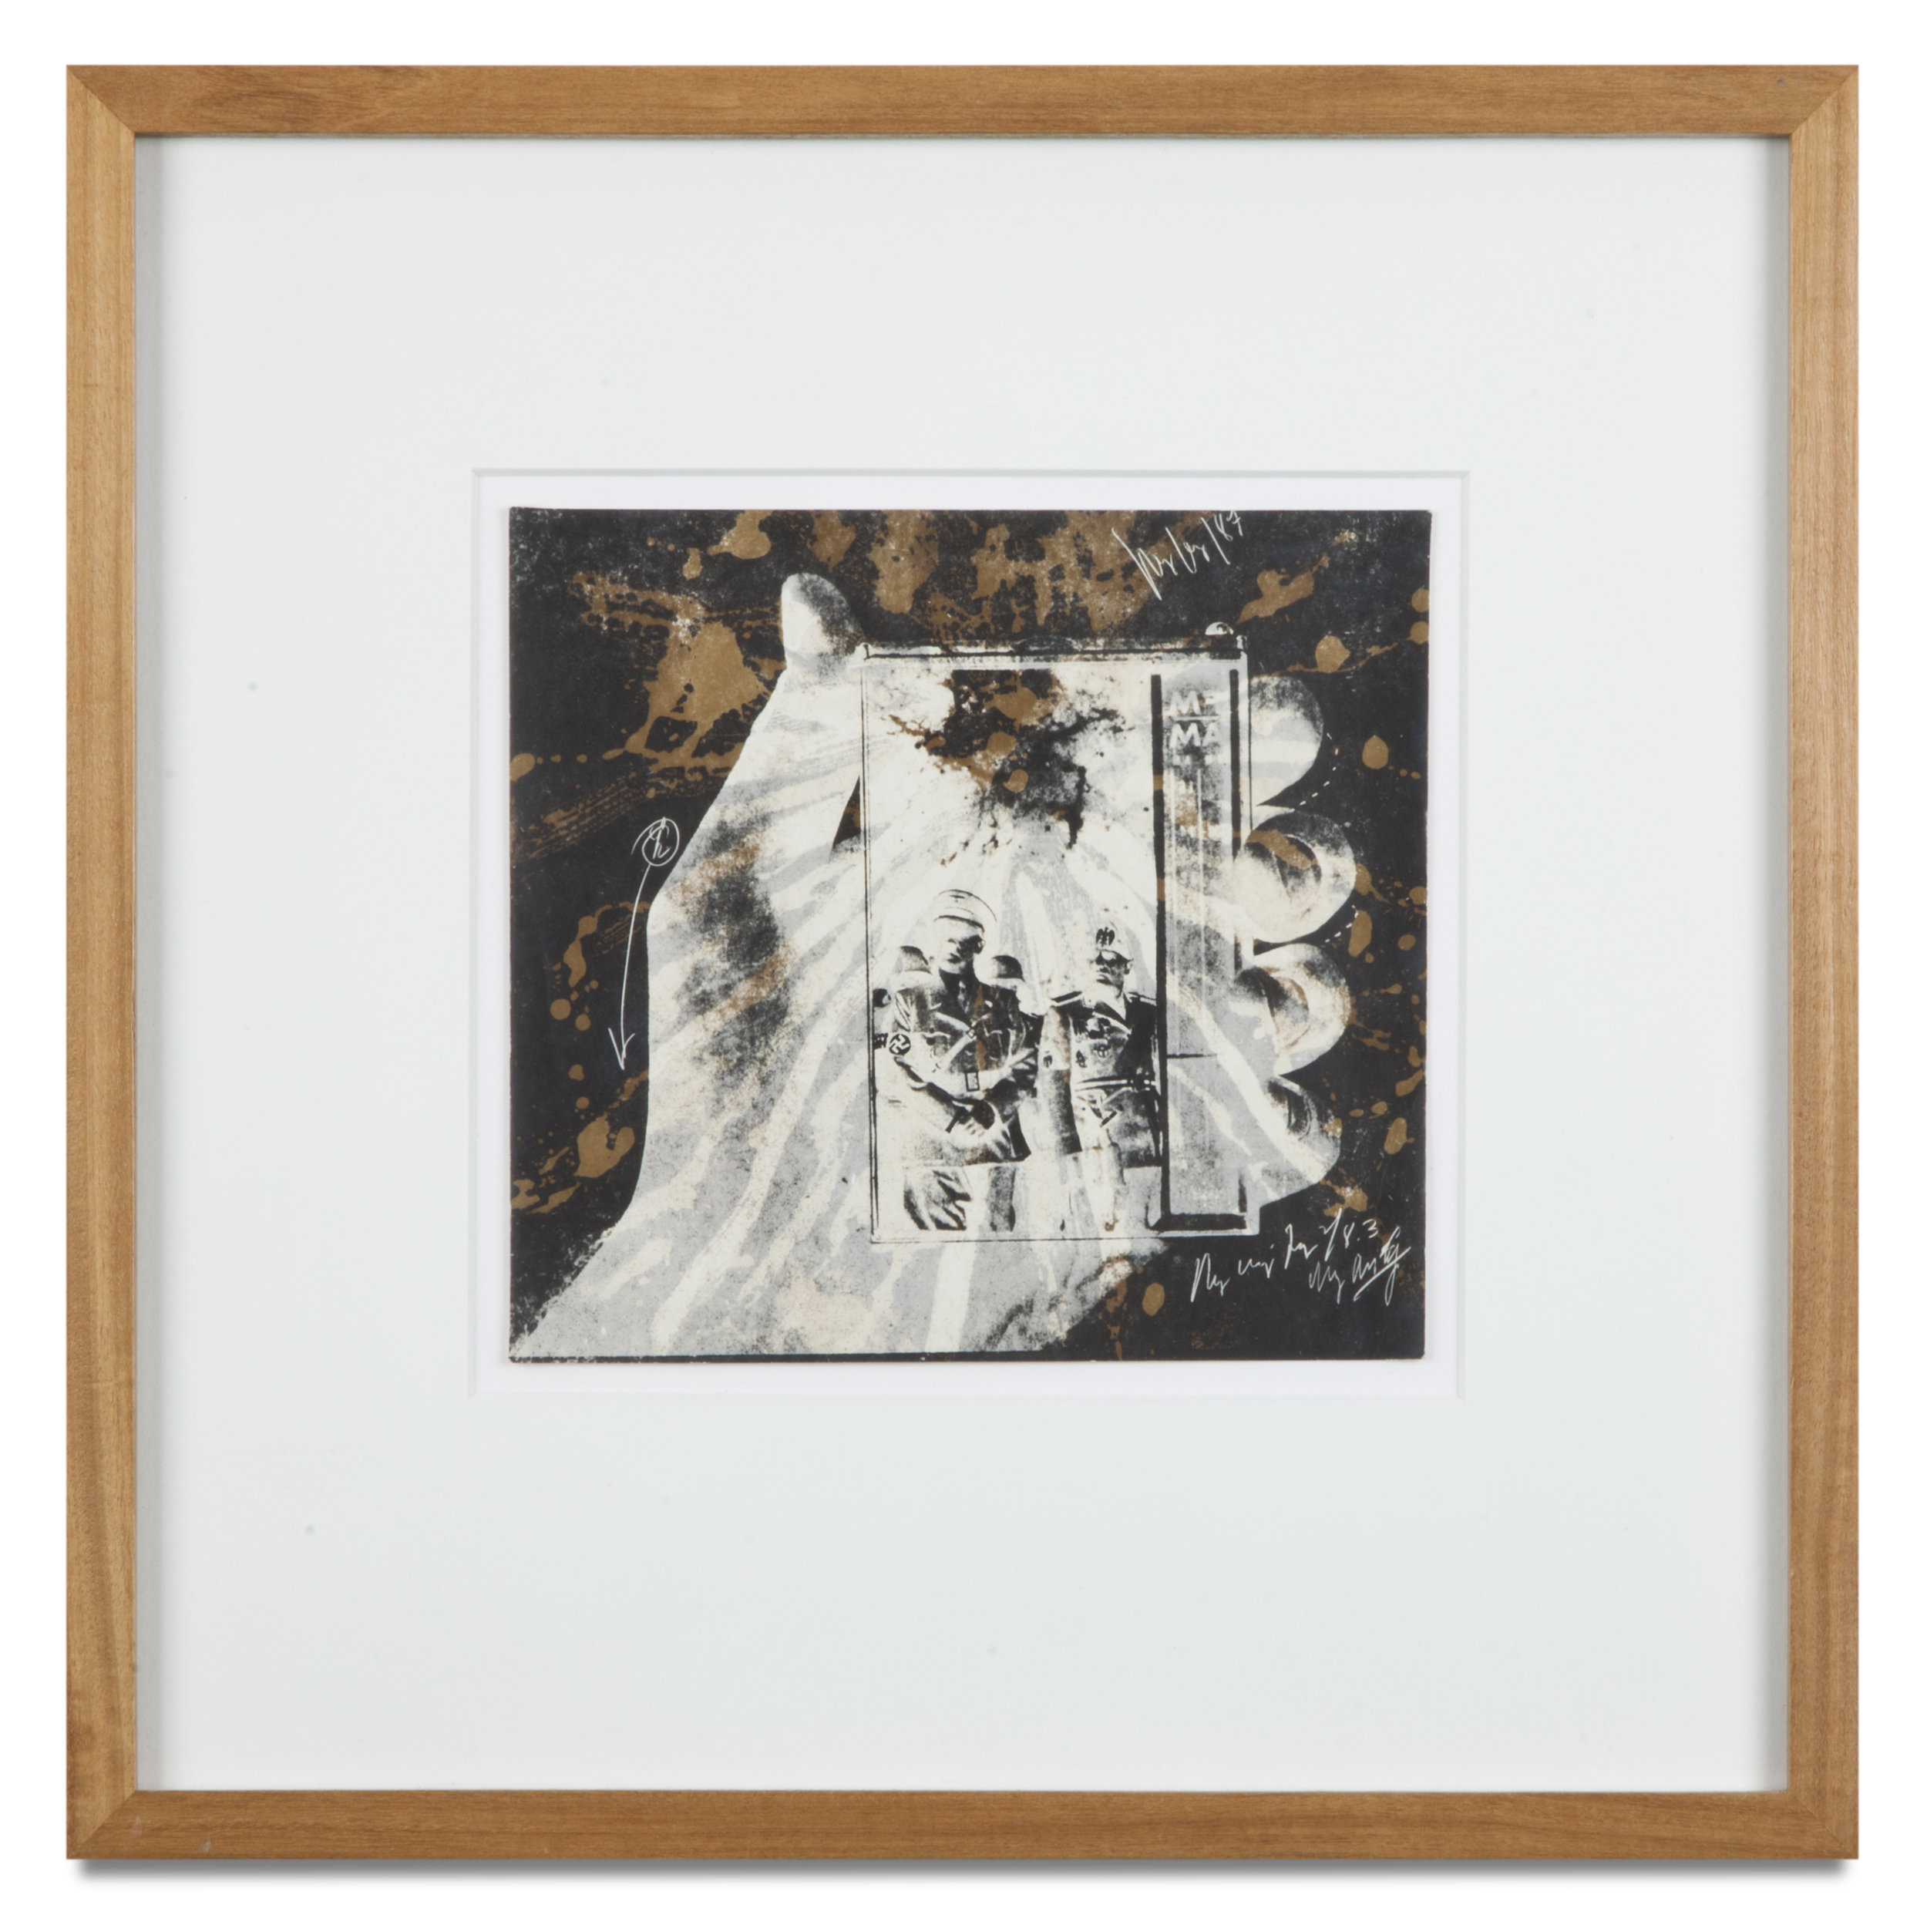 "Copy of ""Untitled #40"" , c. 1964-76, Verifax collage, 6 x 6 1/2 inches, framed 12 x 12 1/2 inches"